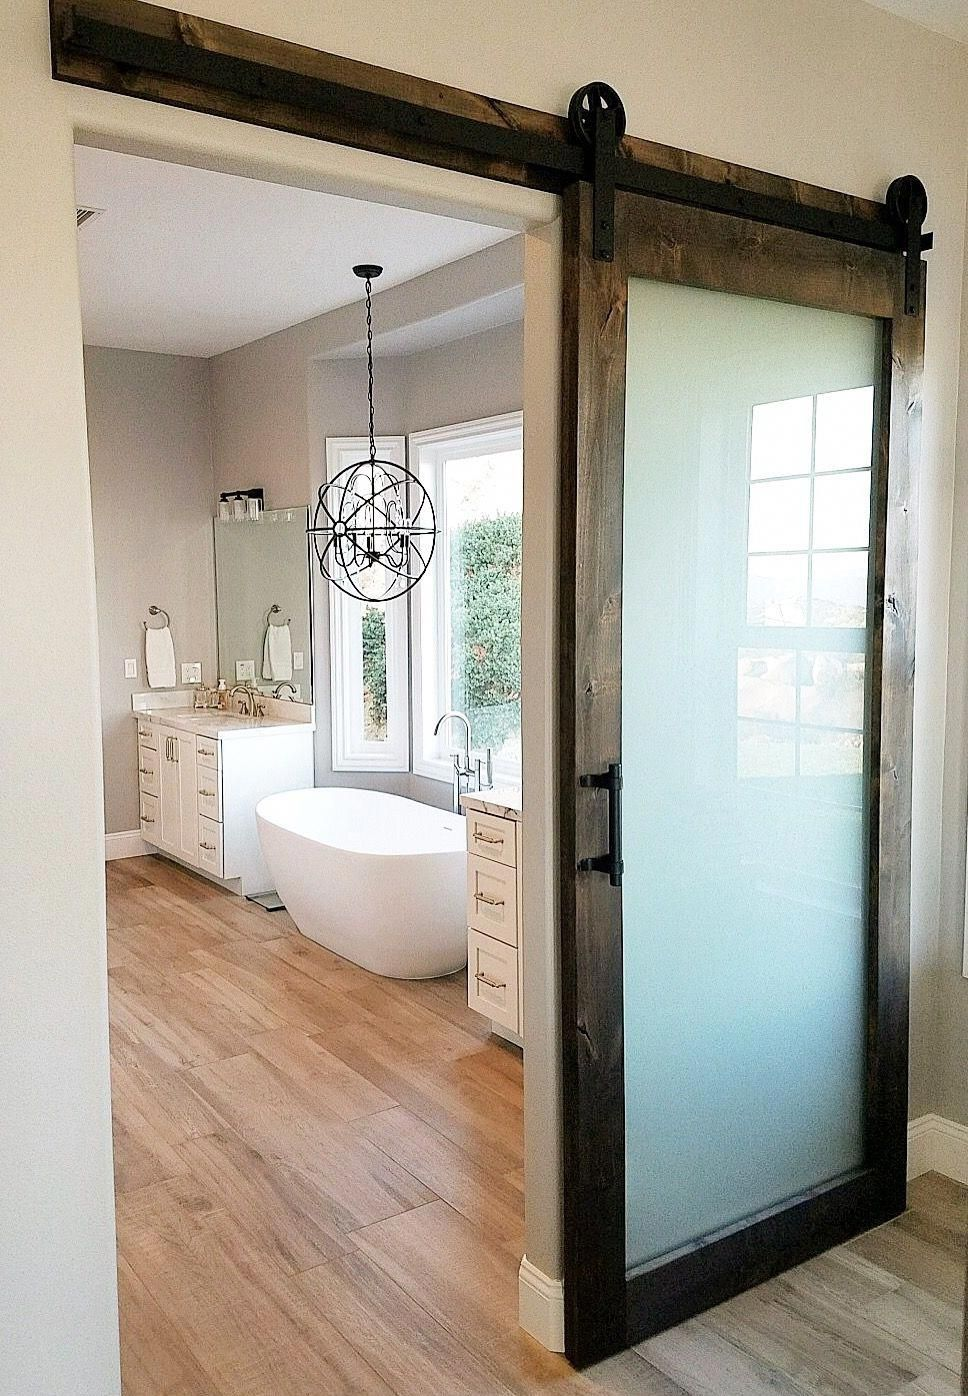 Interior Double Barn Doors Buy Barn Door Hardware Grey Sliding Barn Door 20181204 Bathroom Barn Door Barn Doors Sliding Glass Barn Doors